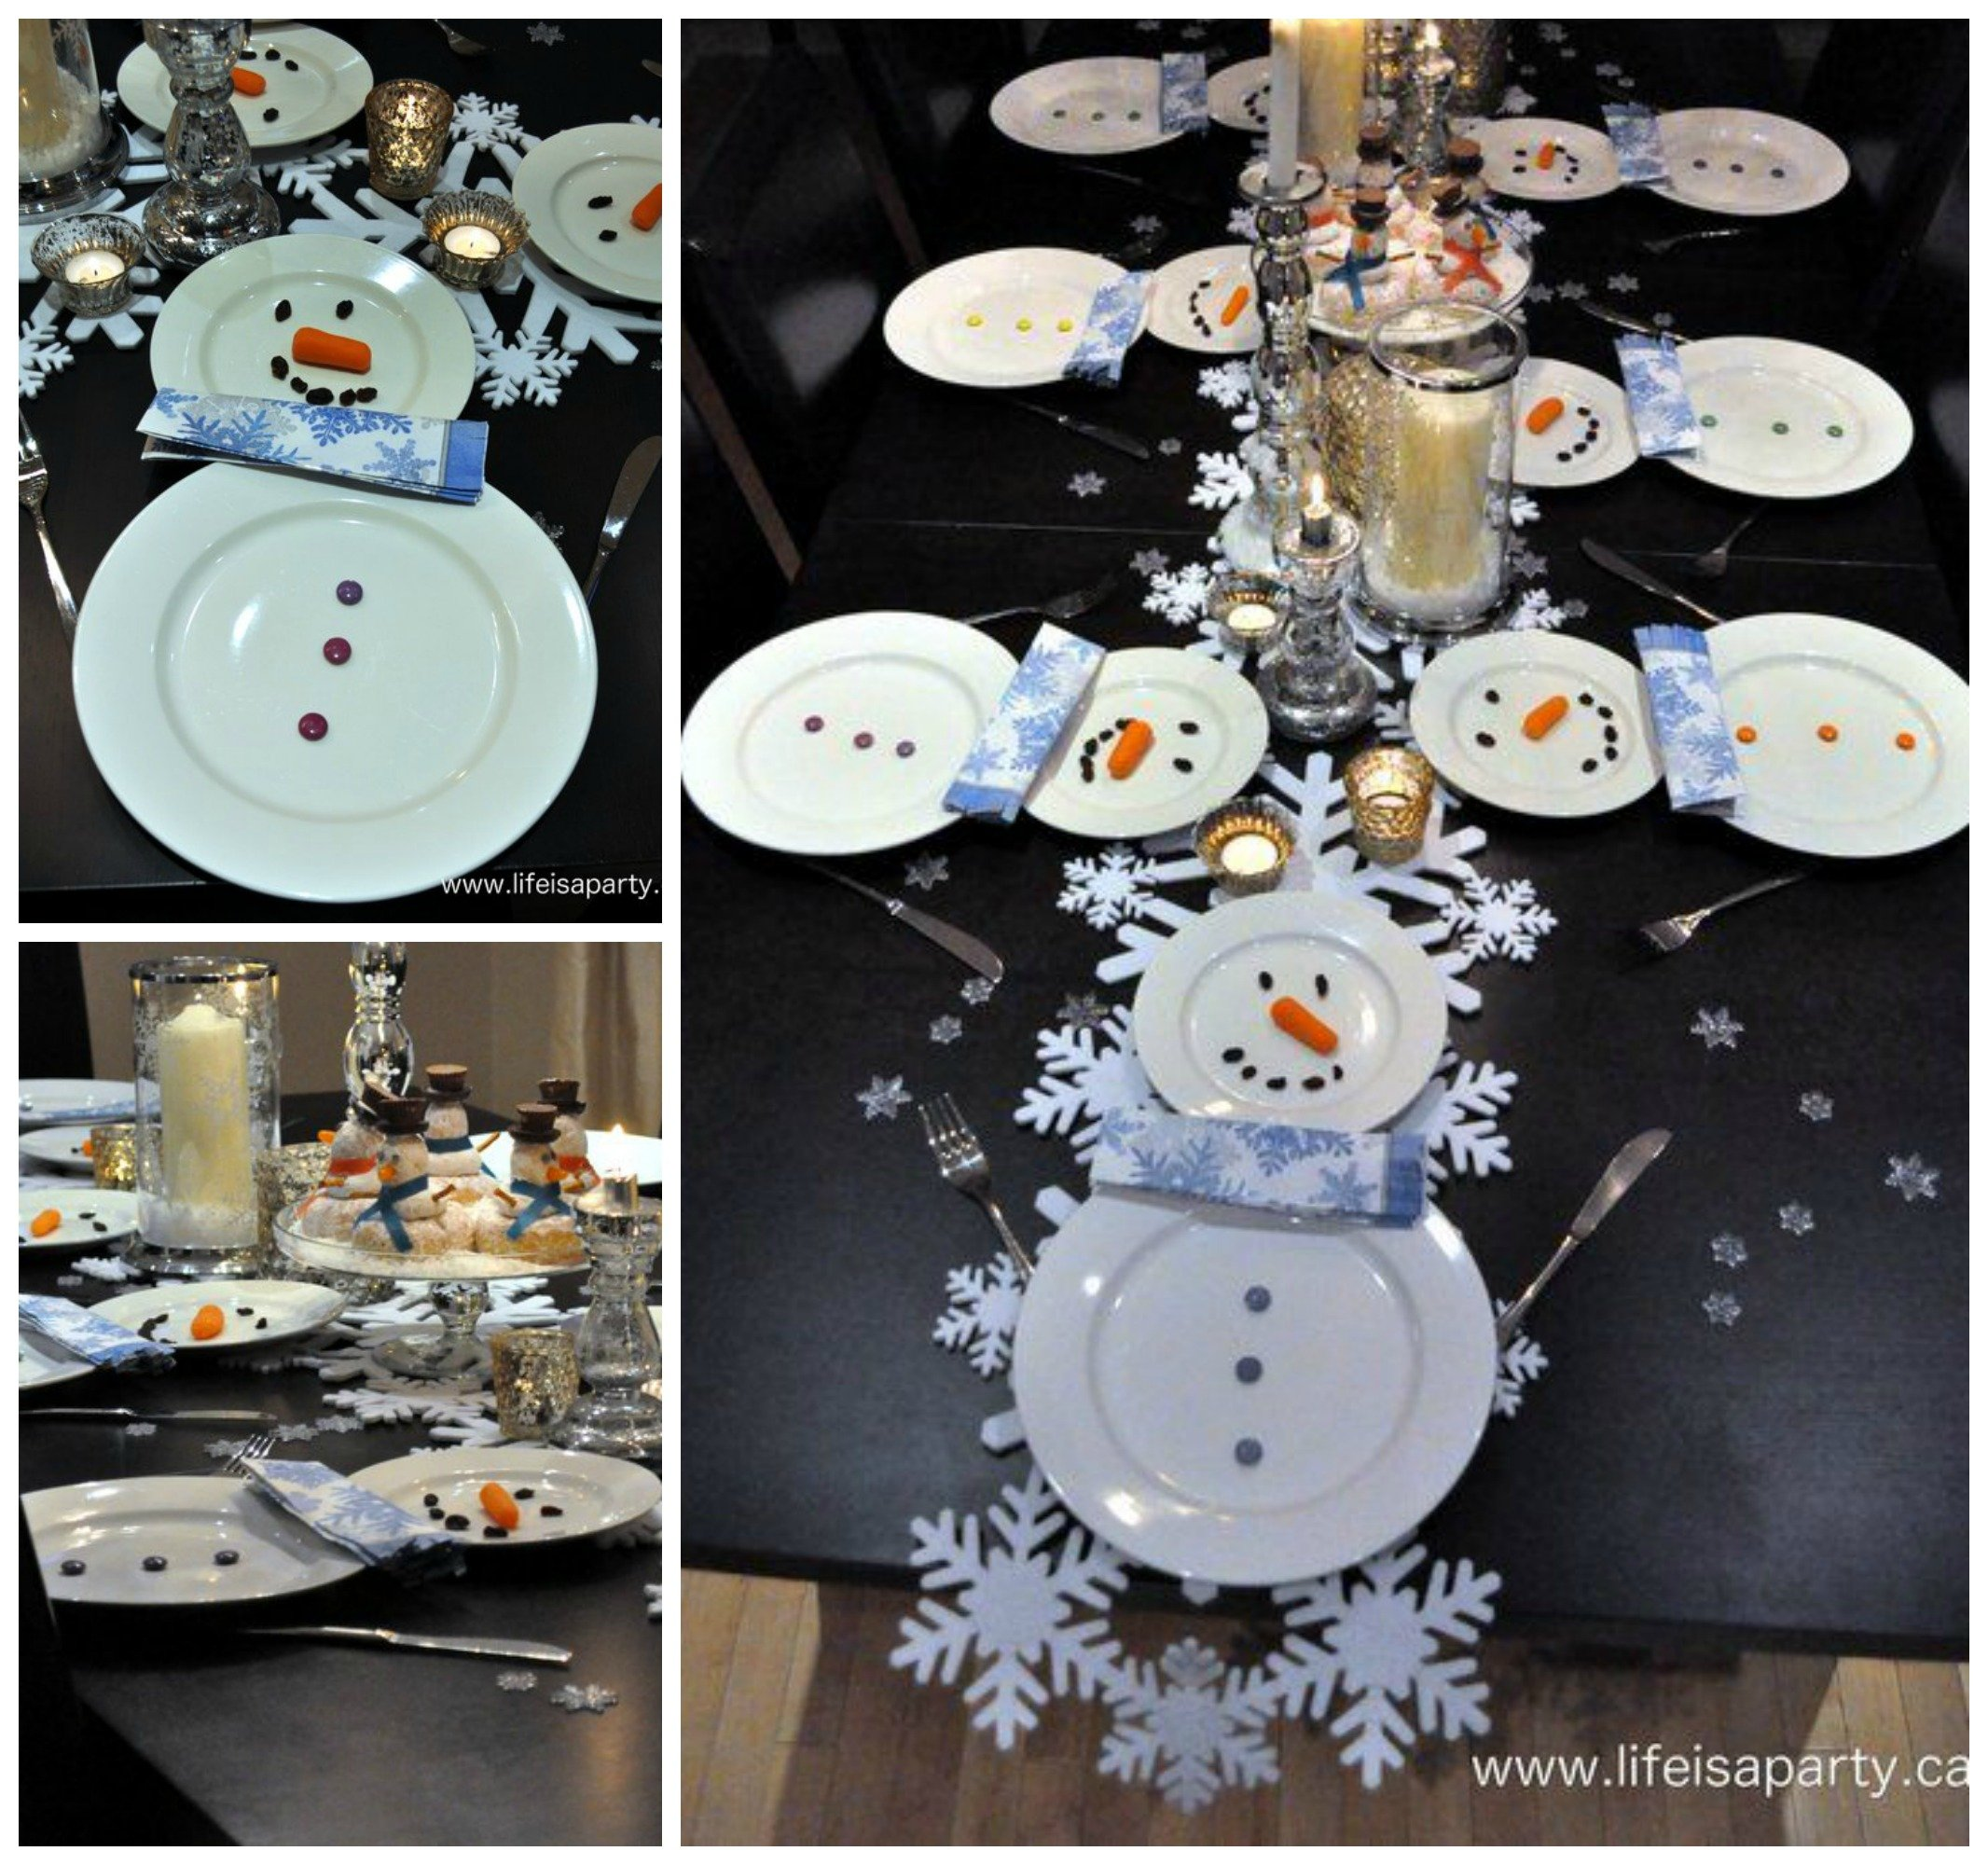 Fun Christmas Table Decorations: Fun Finds Friday Including Christmas Food & Craft Ideas